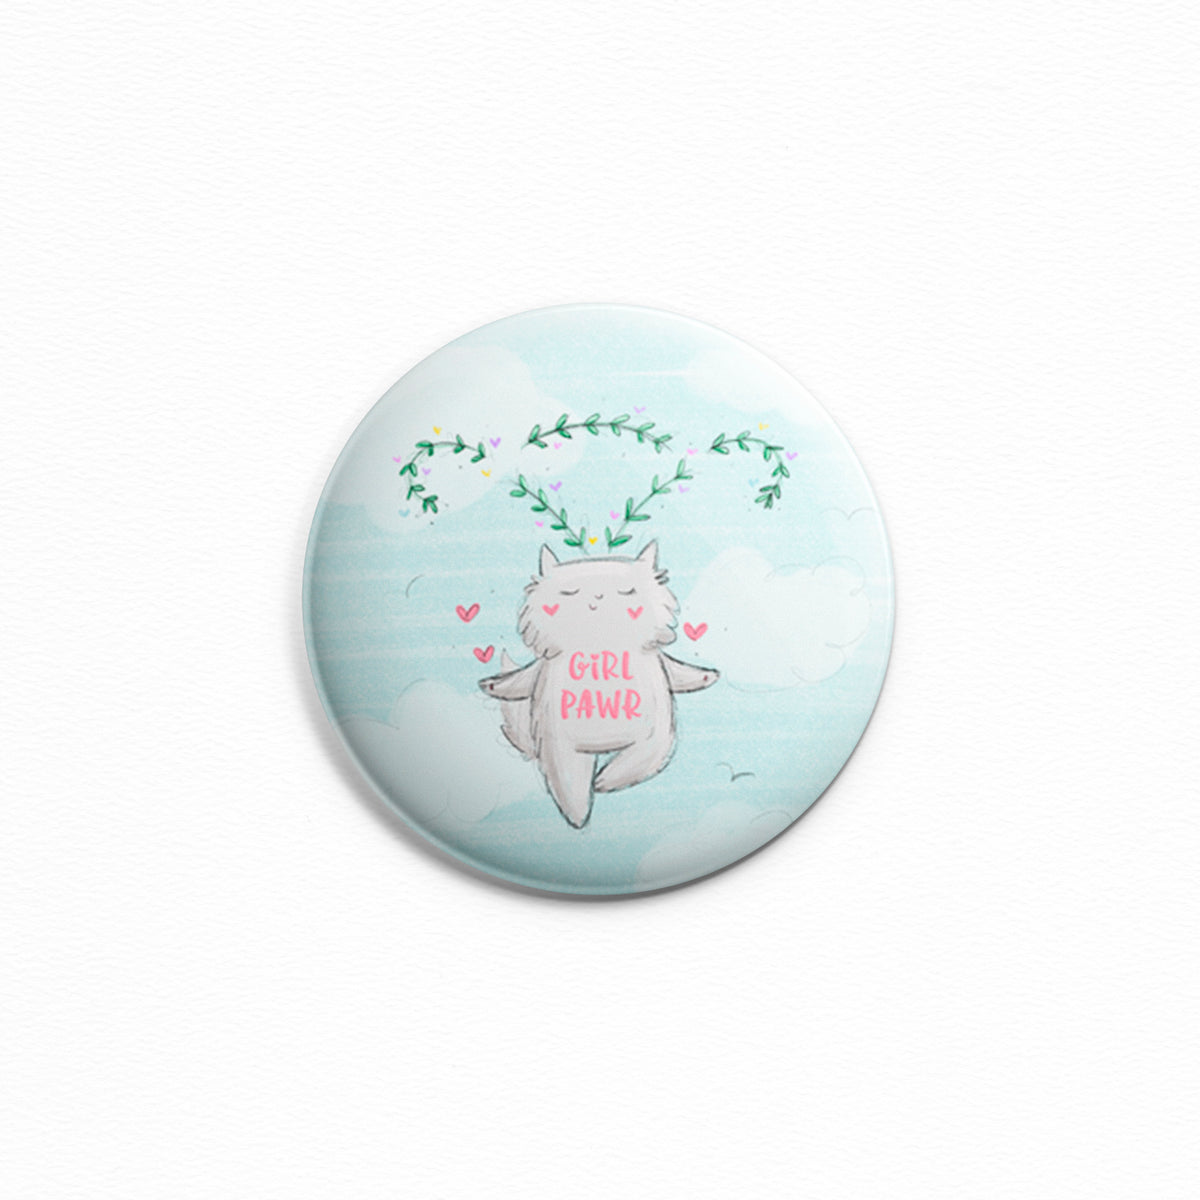 Girl Pawr - Pinback button or ceramic magnet by My Cat Is People